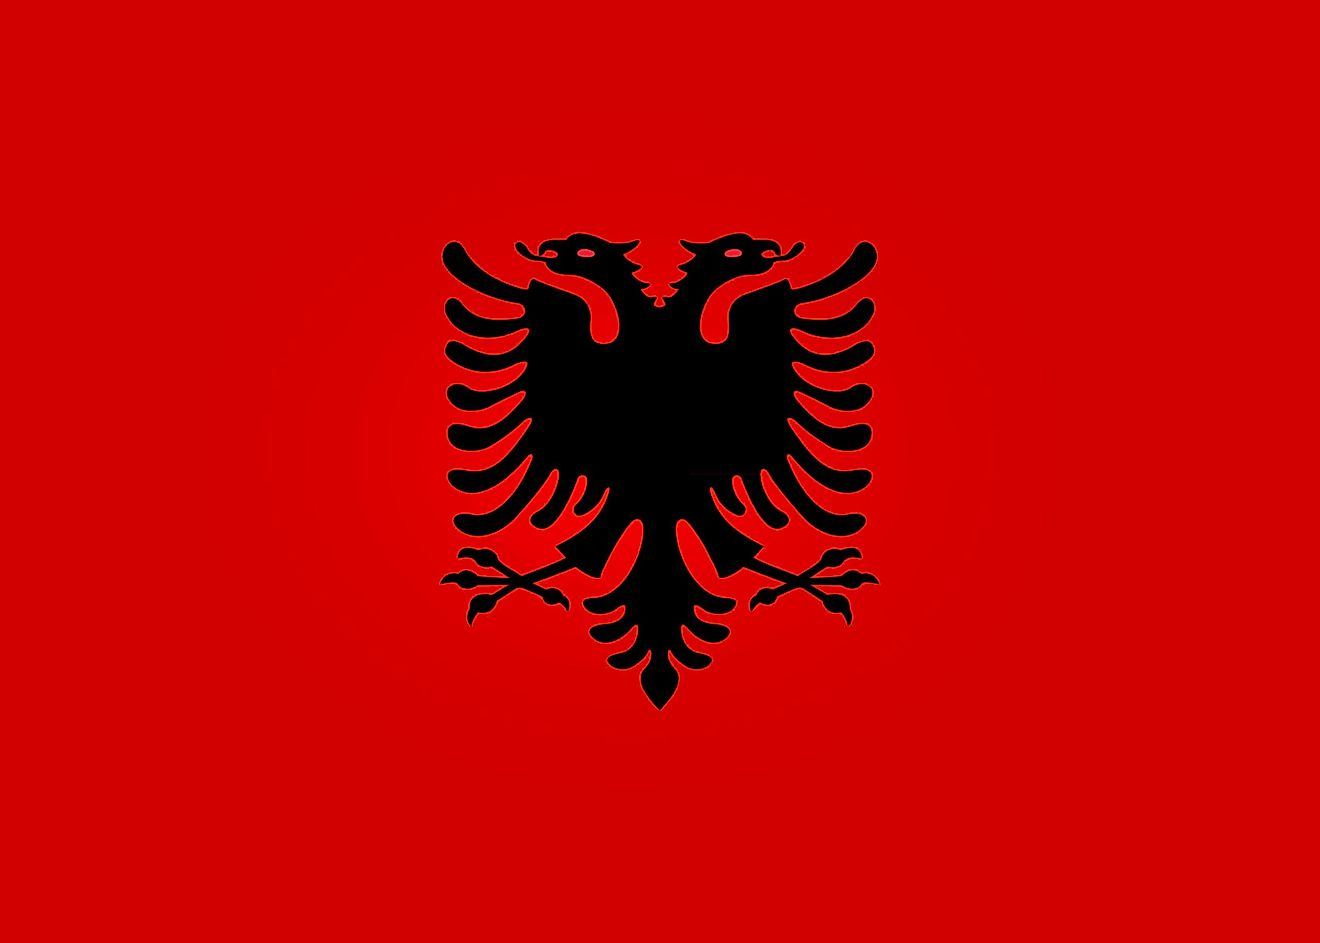 The flag of Albania famously features an eagle.